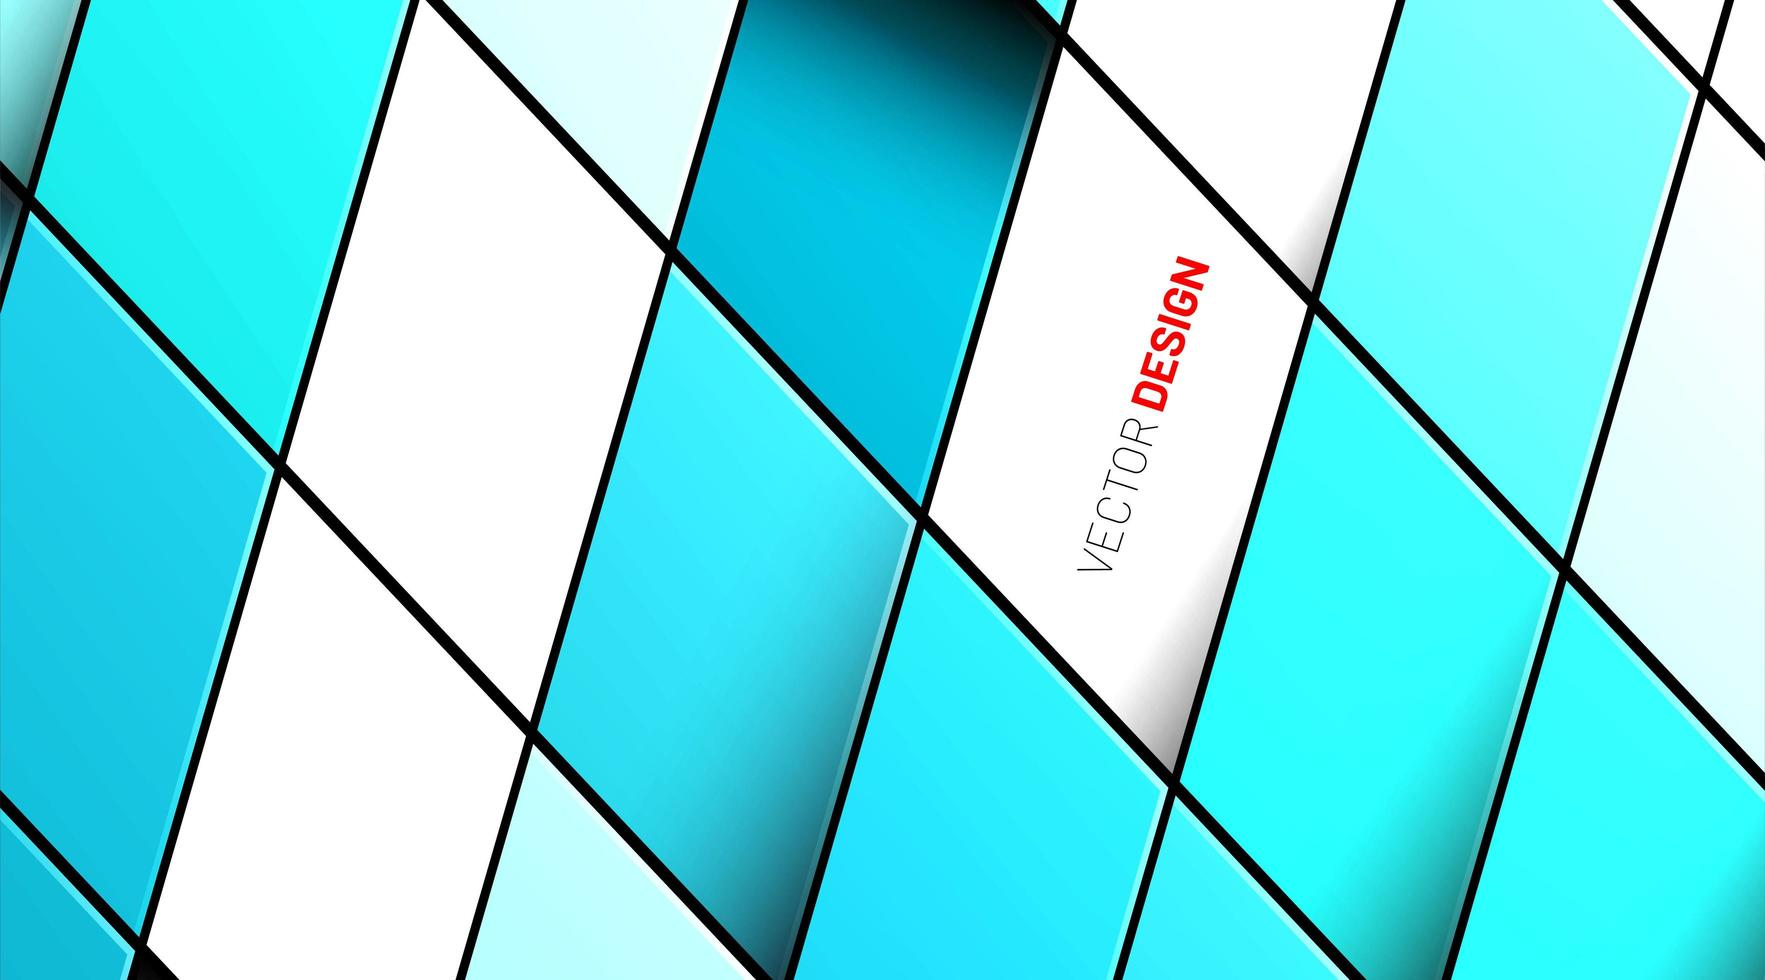 abstract vector background with triangular wall patterns